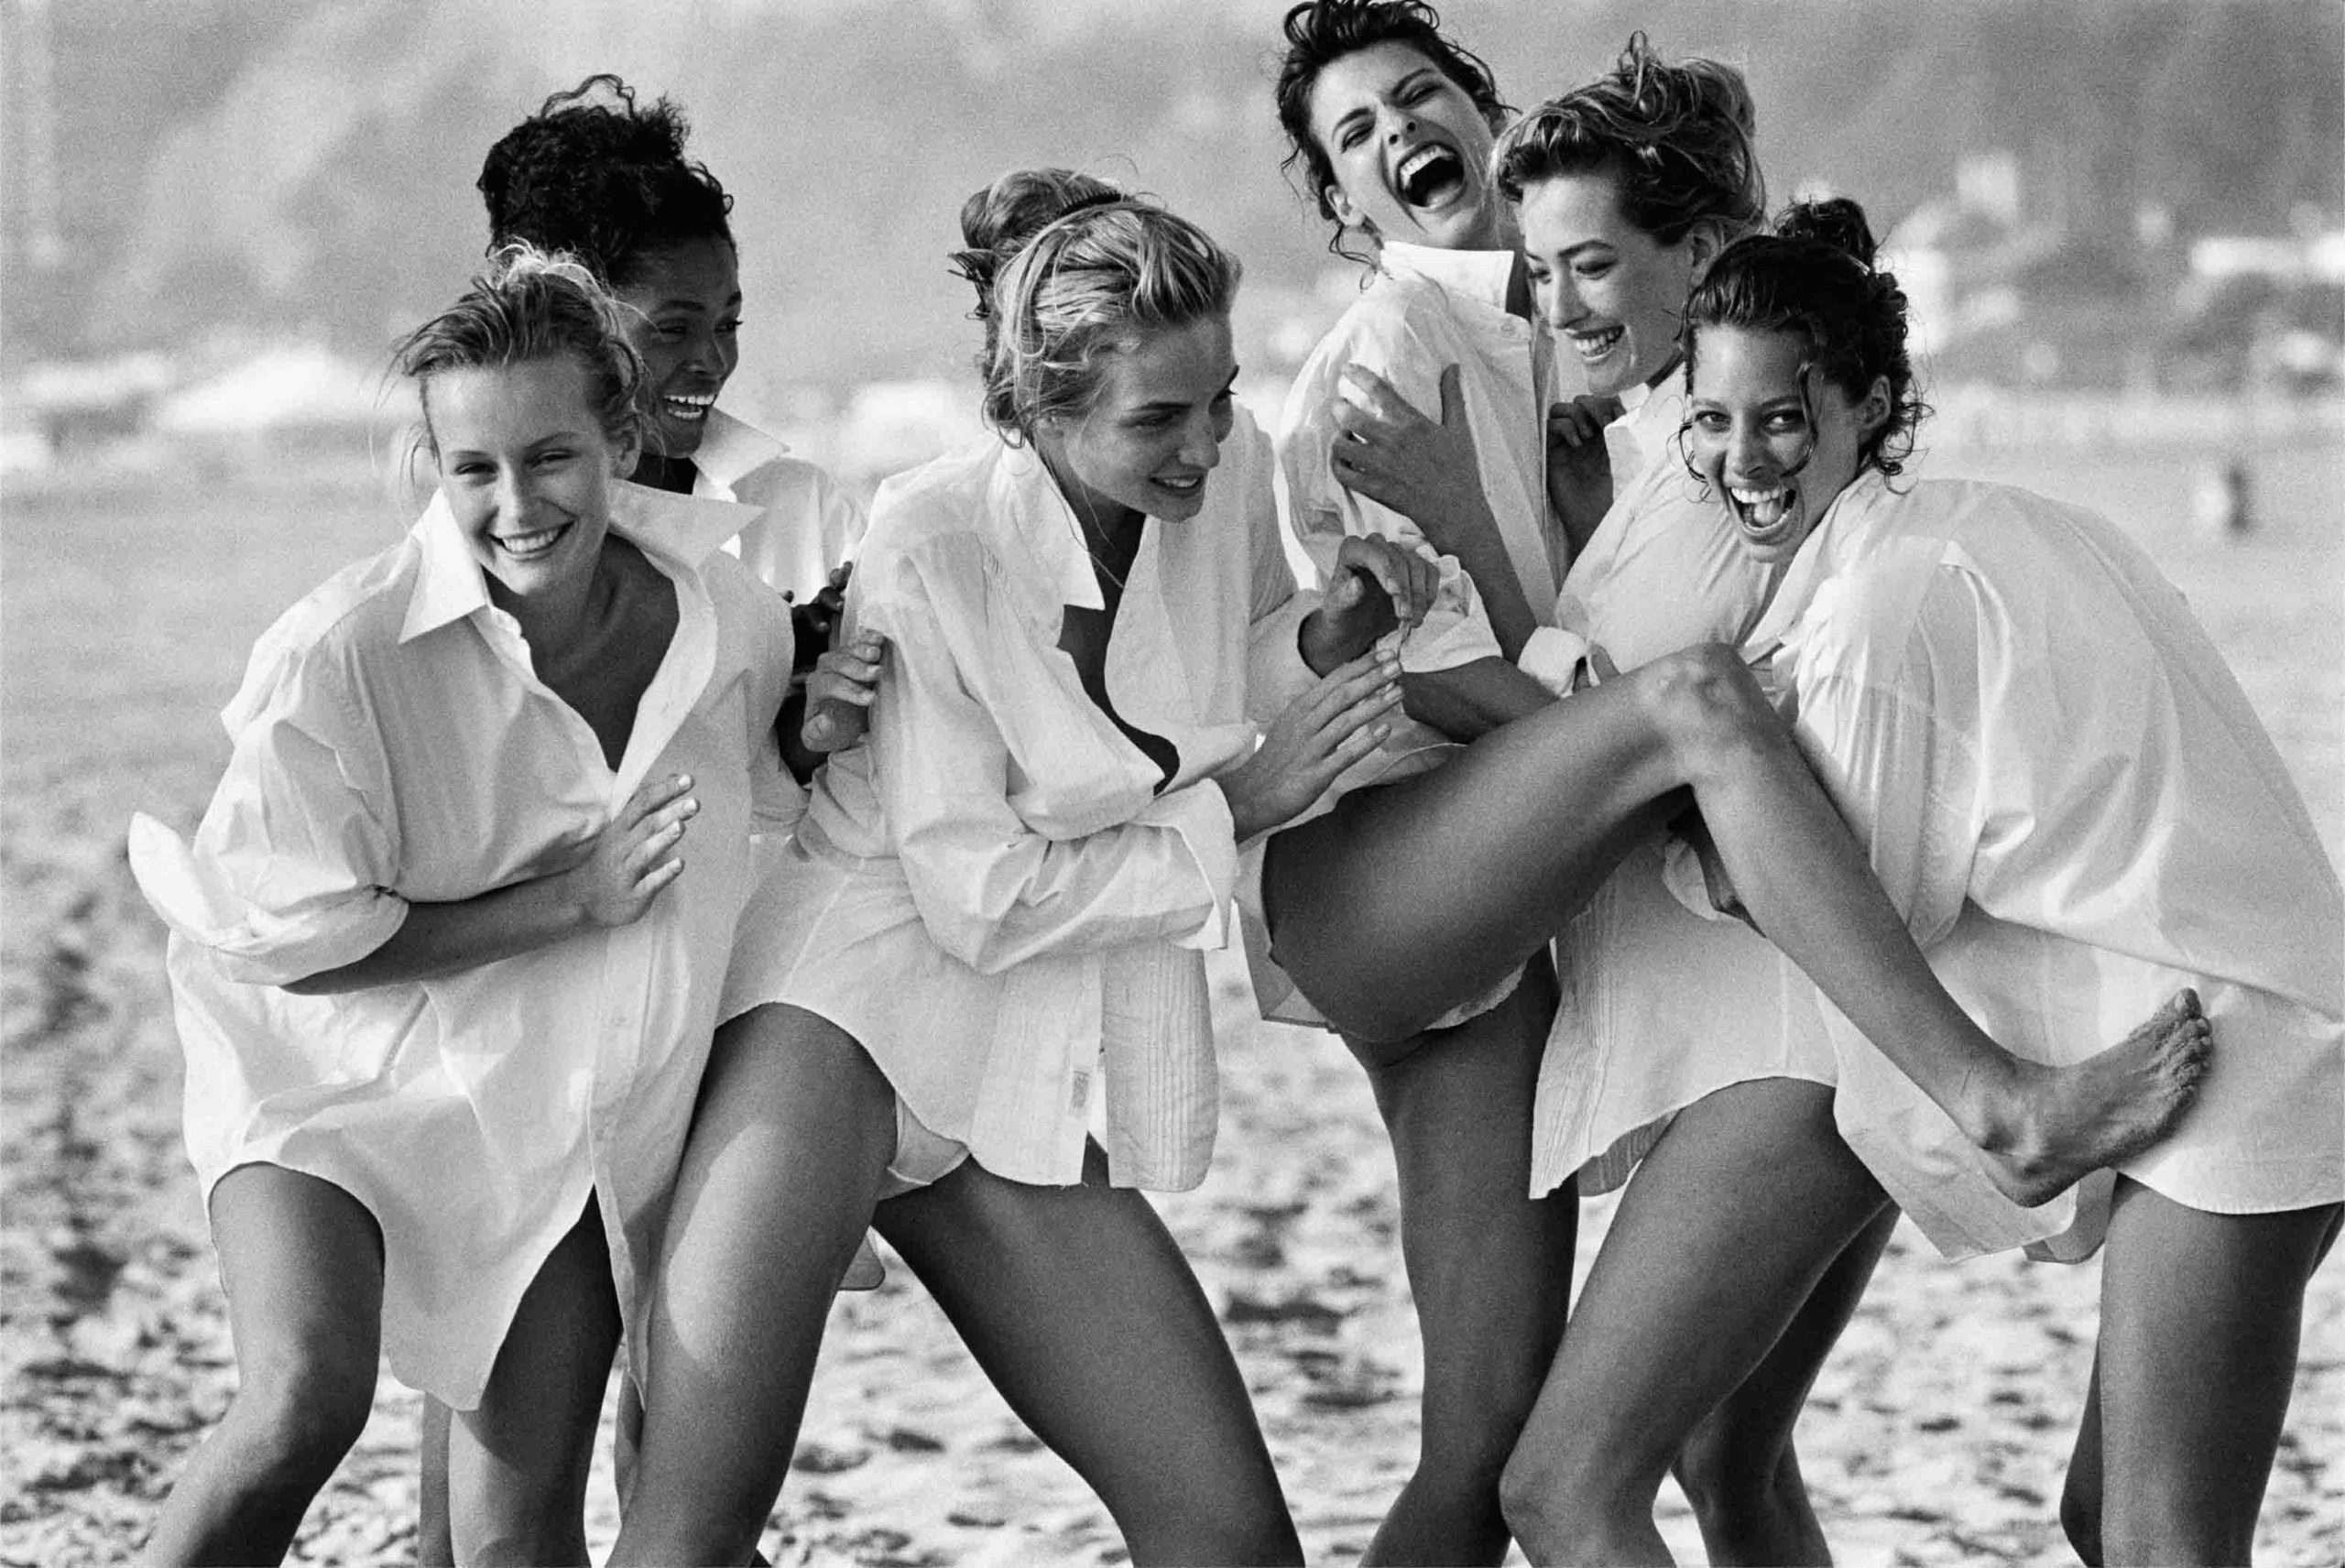 Estelle Lefébure, Karen Alexander, Rachel Williams, Linda Evangelista, Tatjana Patitz, Christy Turlington, 1988.